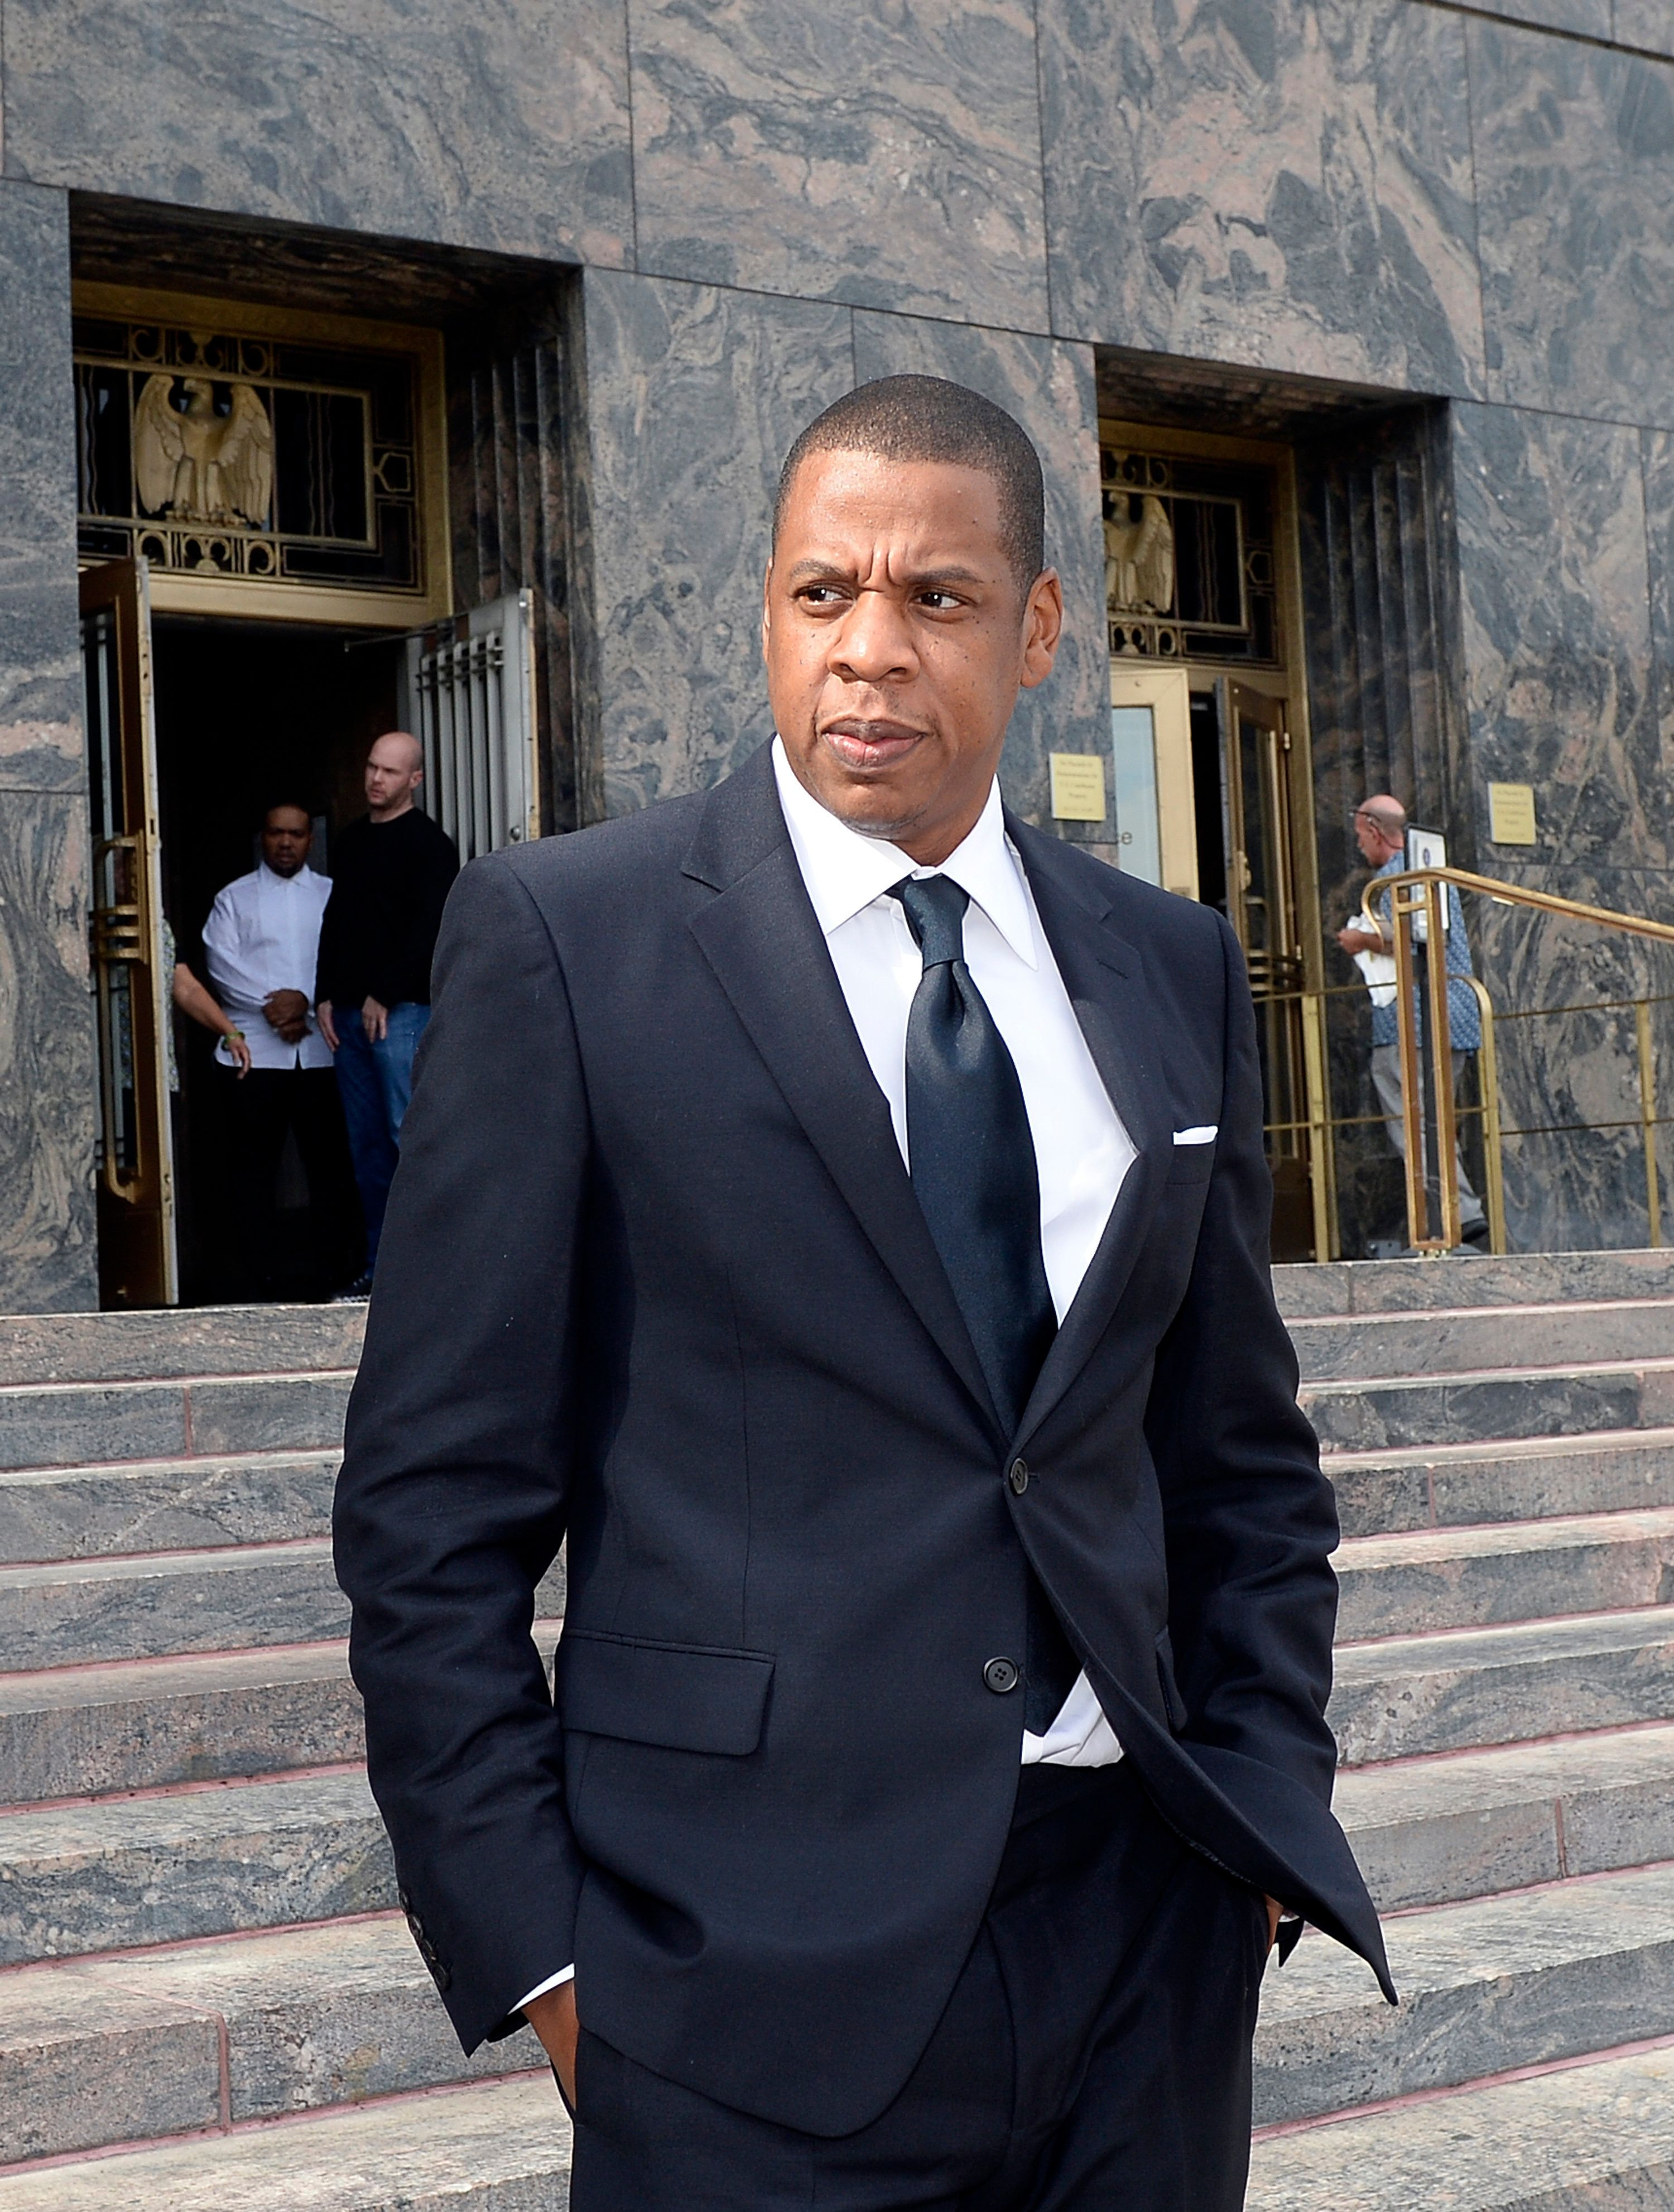 LOS ANGELES CA - OCTOBER 14: Rap mogul Jay Z departs United States District Court after testifying in a copyright lawsuit on October 14, 2015 in Los Angeles, California. Jay Z and Timbaland are being accused of violating the copyright to Egyptian composer Baligh Hamdi's 1957 song 'Khosara Khosara' by allegedly misusing the music to create Jay Z's song 'Big Pimpin.'  (Photo by Kevork S. Djansezian/Getty Images)